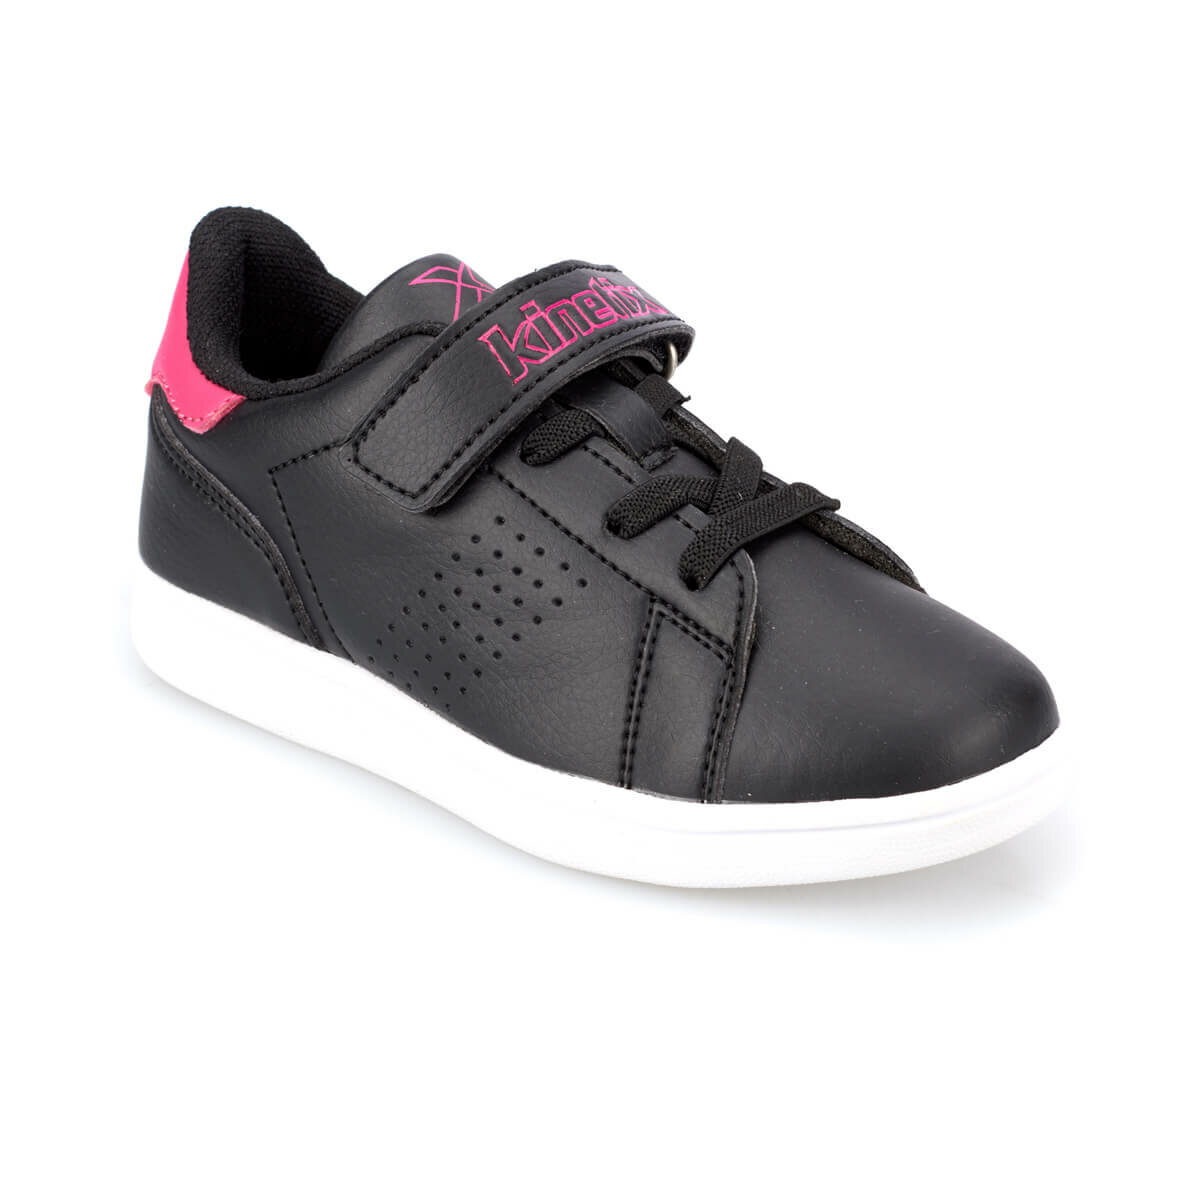 FLO PLAIN J Purple Female Child Sneaker Shoes KINETIX